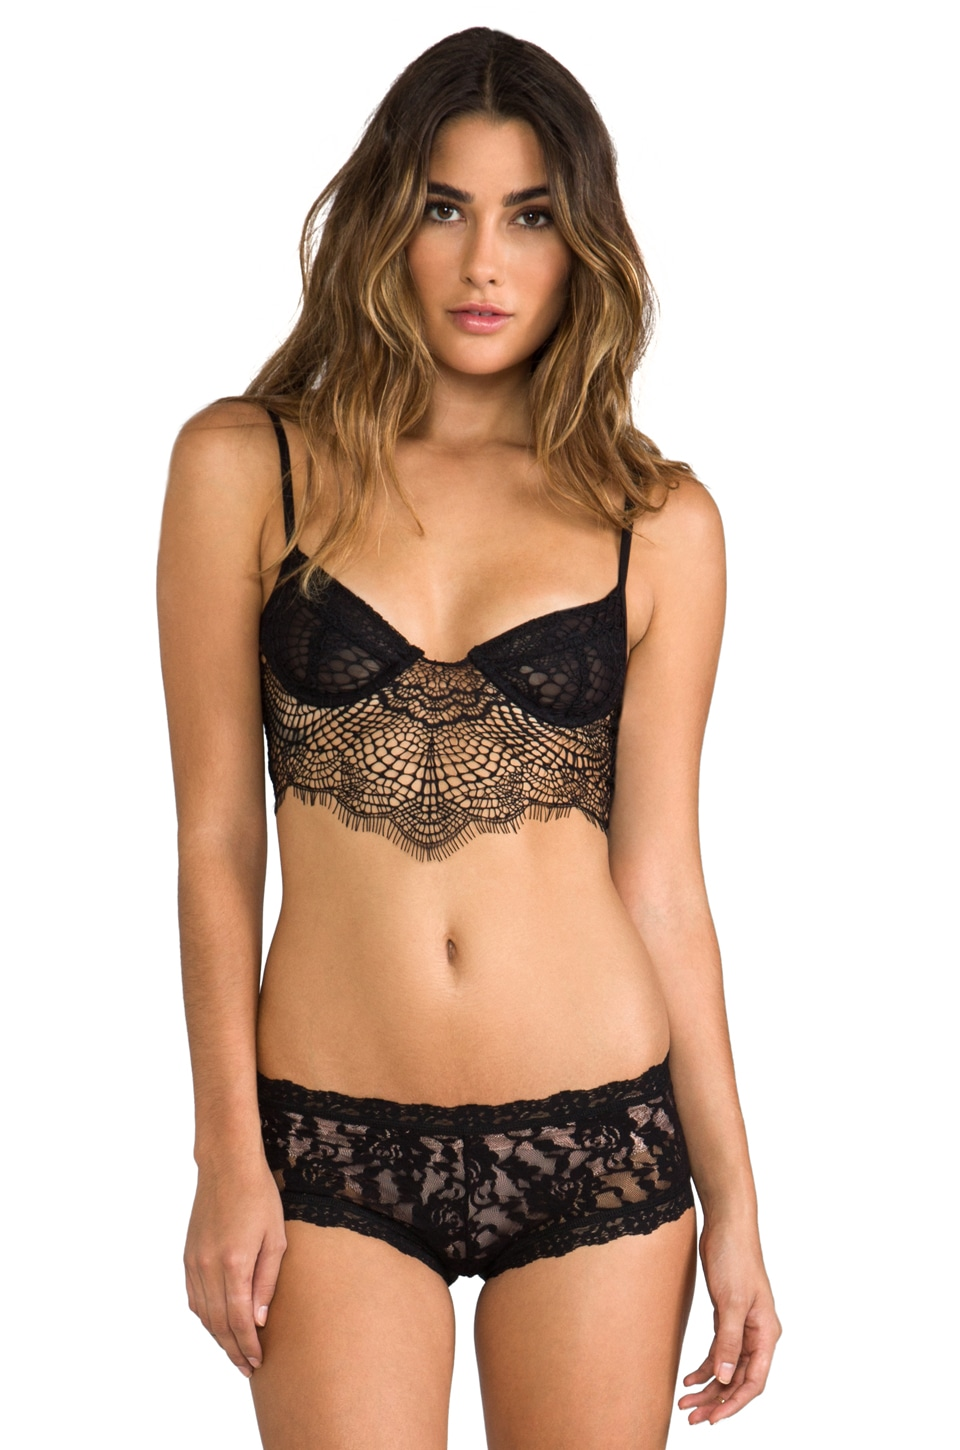 For Love & Lemons Bat-Your-Lashes Underwire Bra in Black